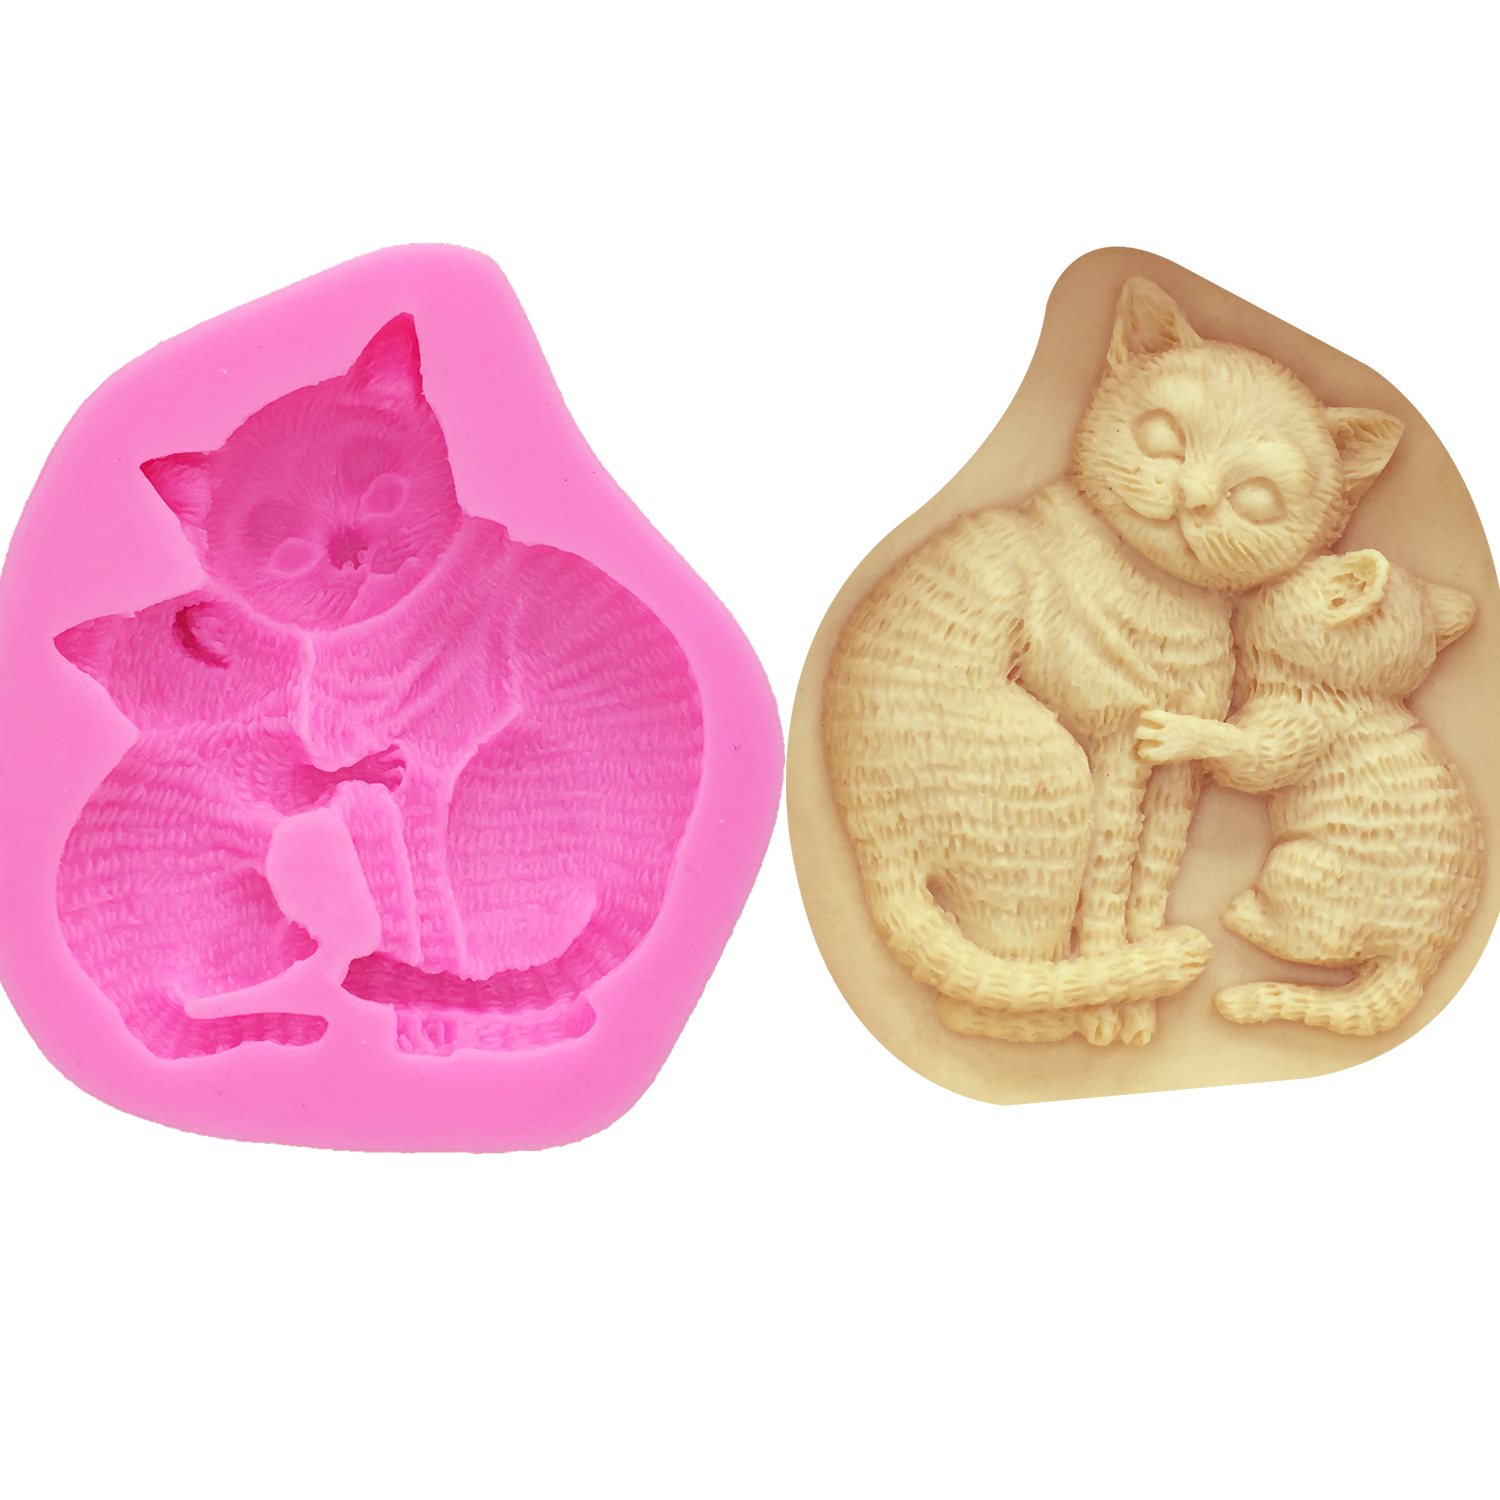 Two kittens round handmade soap silicone mold-Couple fox mold-Love butterfly knot cat mold-Cake decoration mold-Home life crafts mold